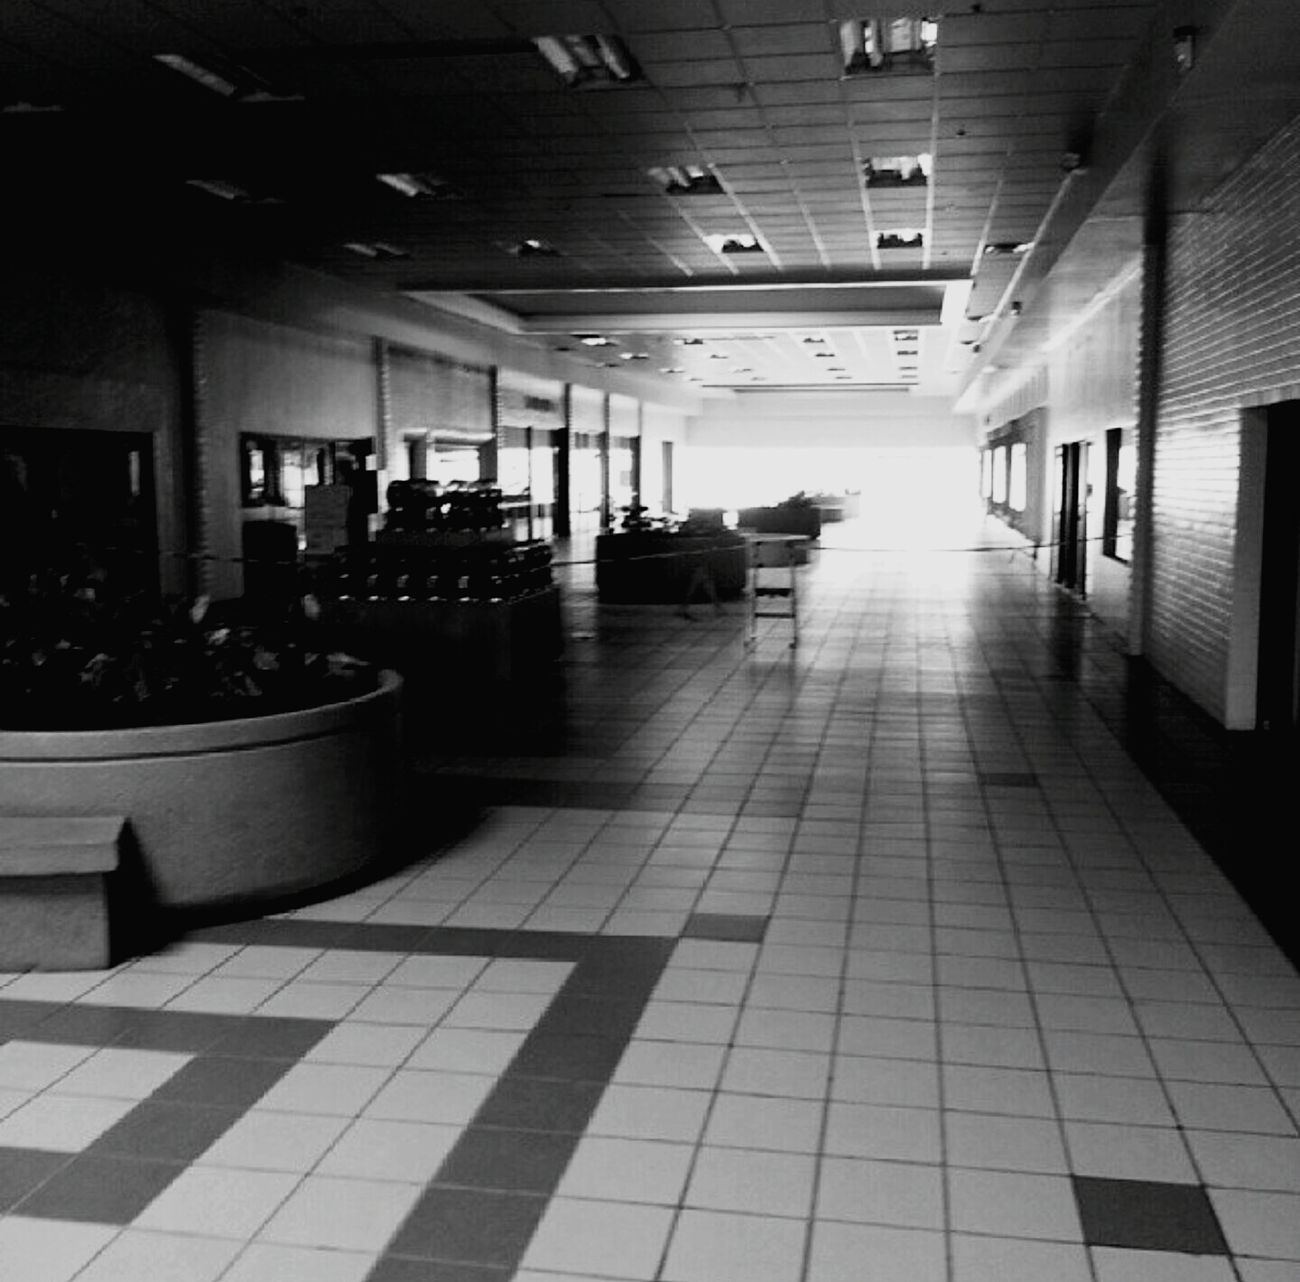 abandoned mall Taking Photos Check This Out Delophotos